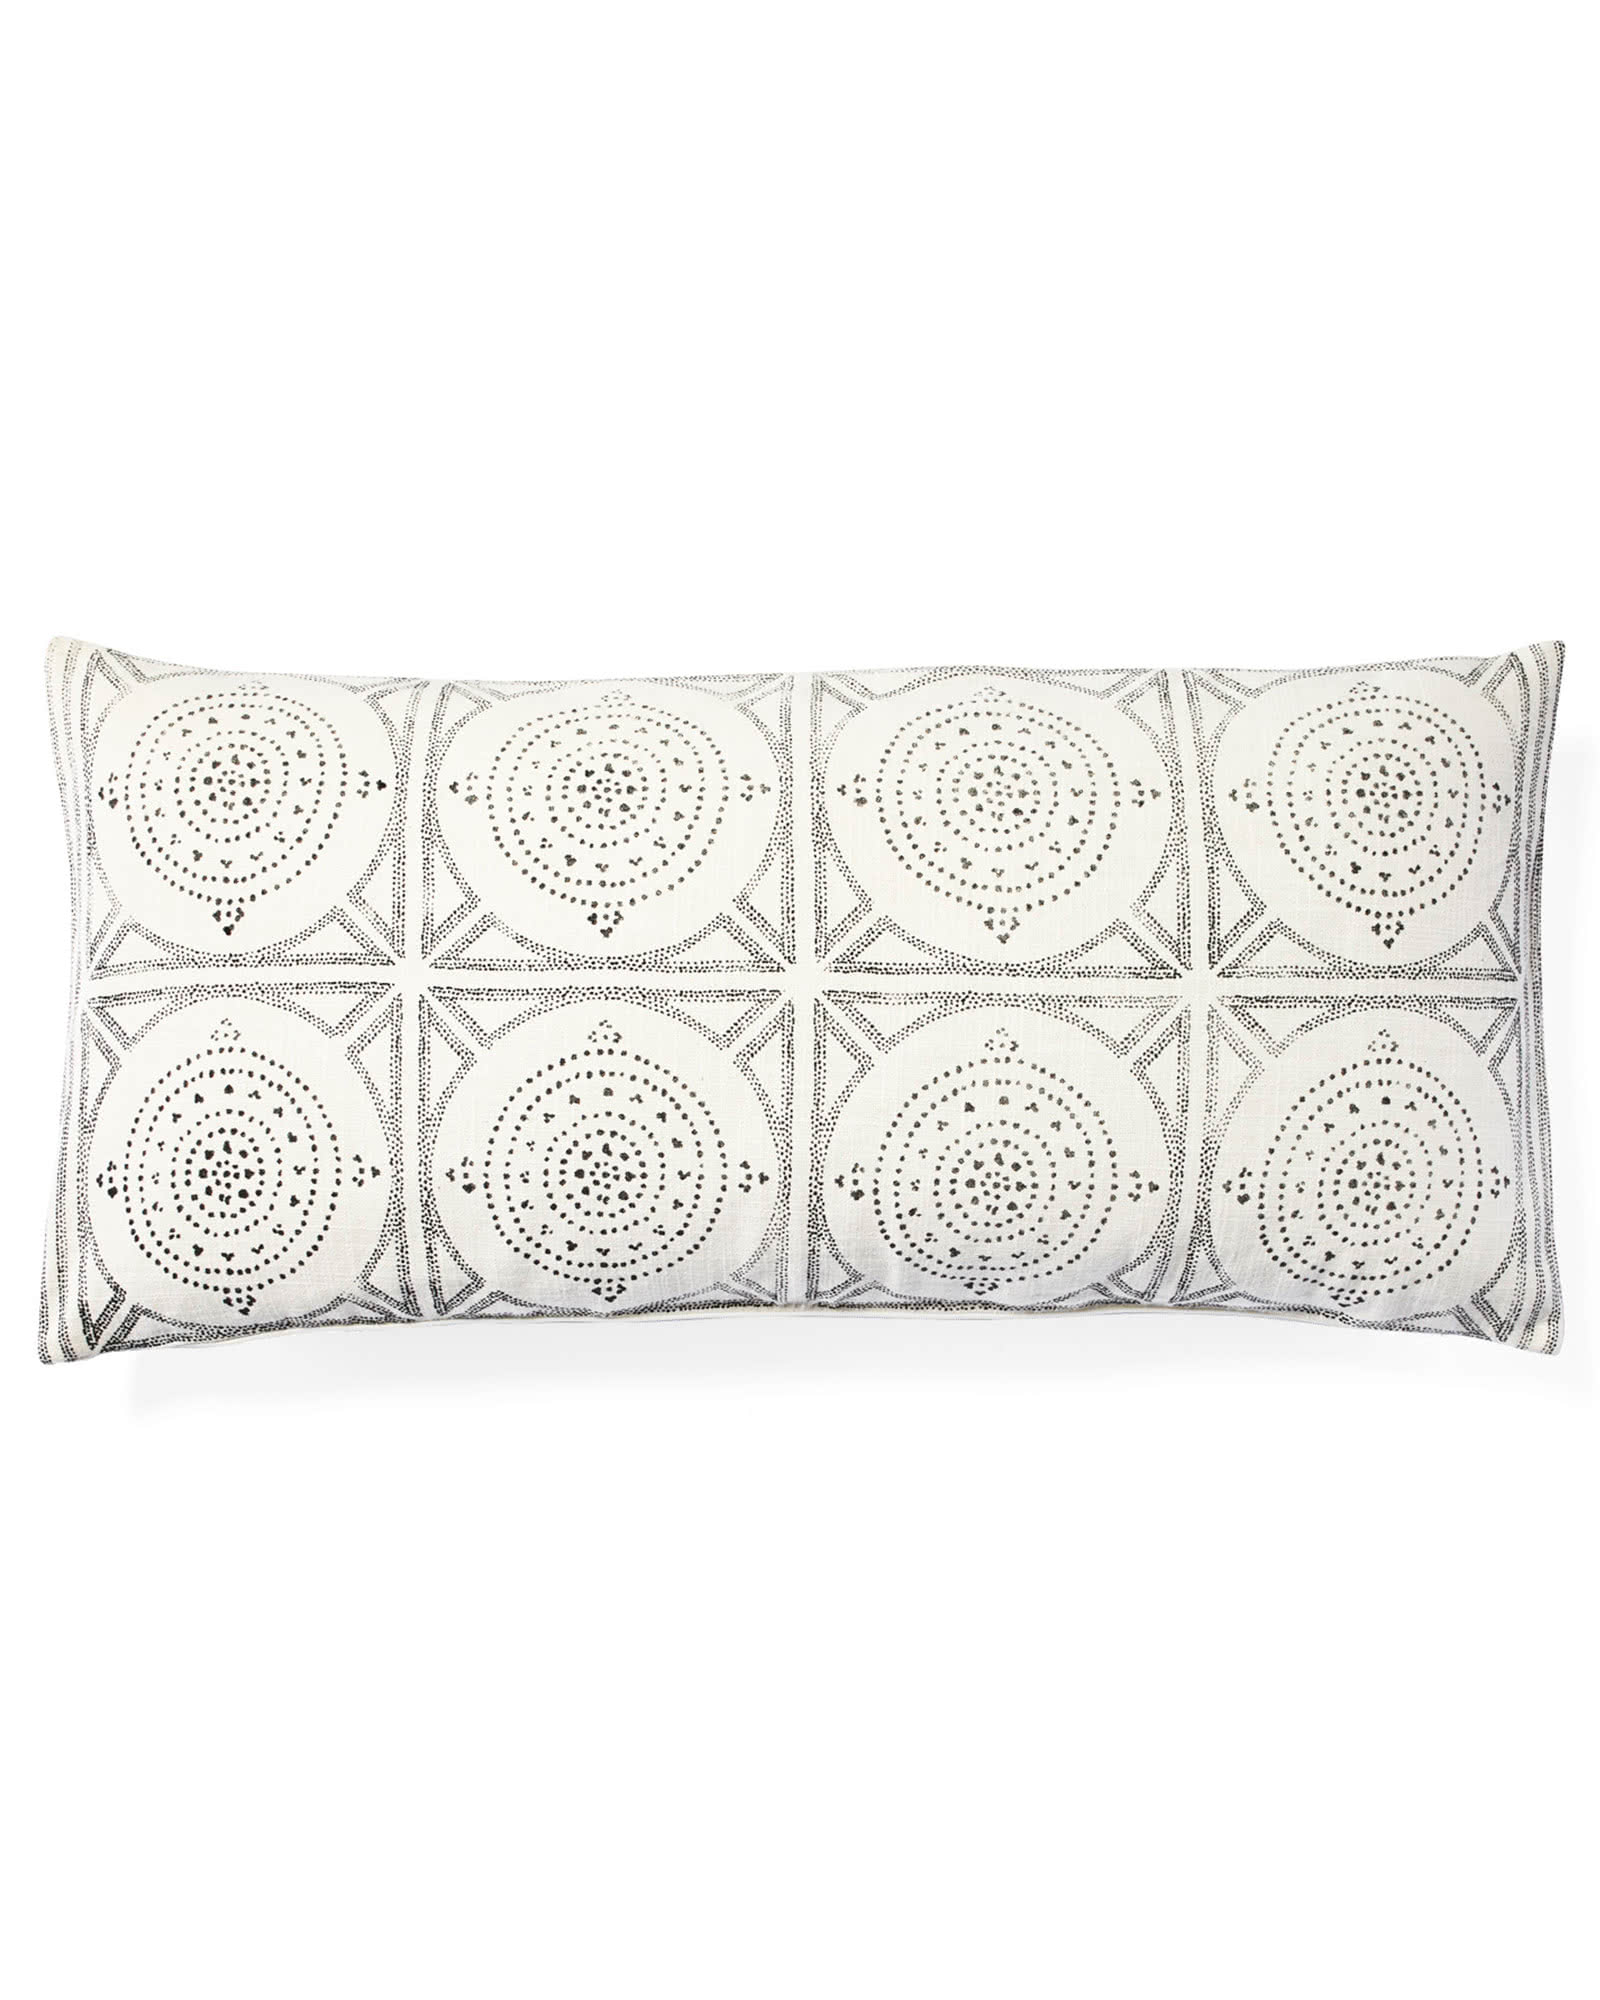 Camille Mosaic Lumbar Pillow Cover, Ivory